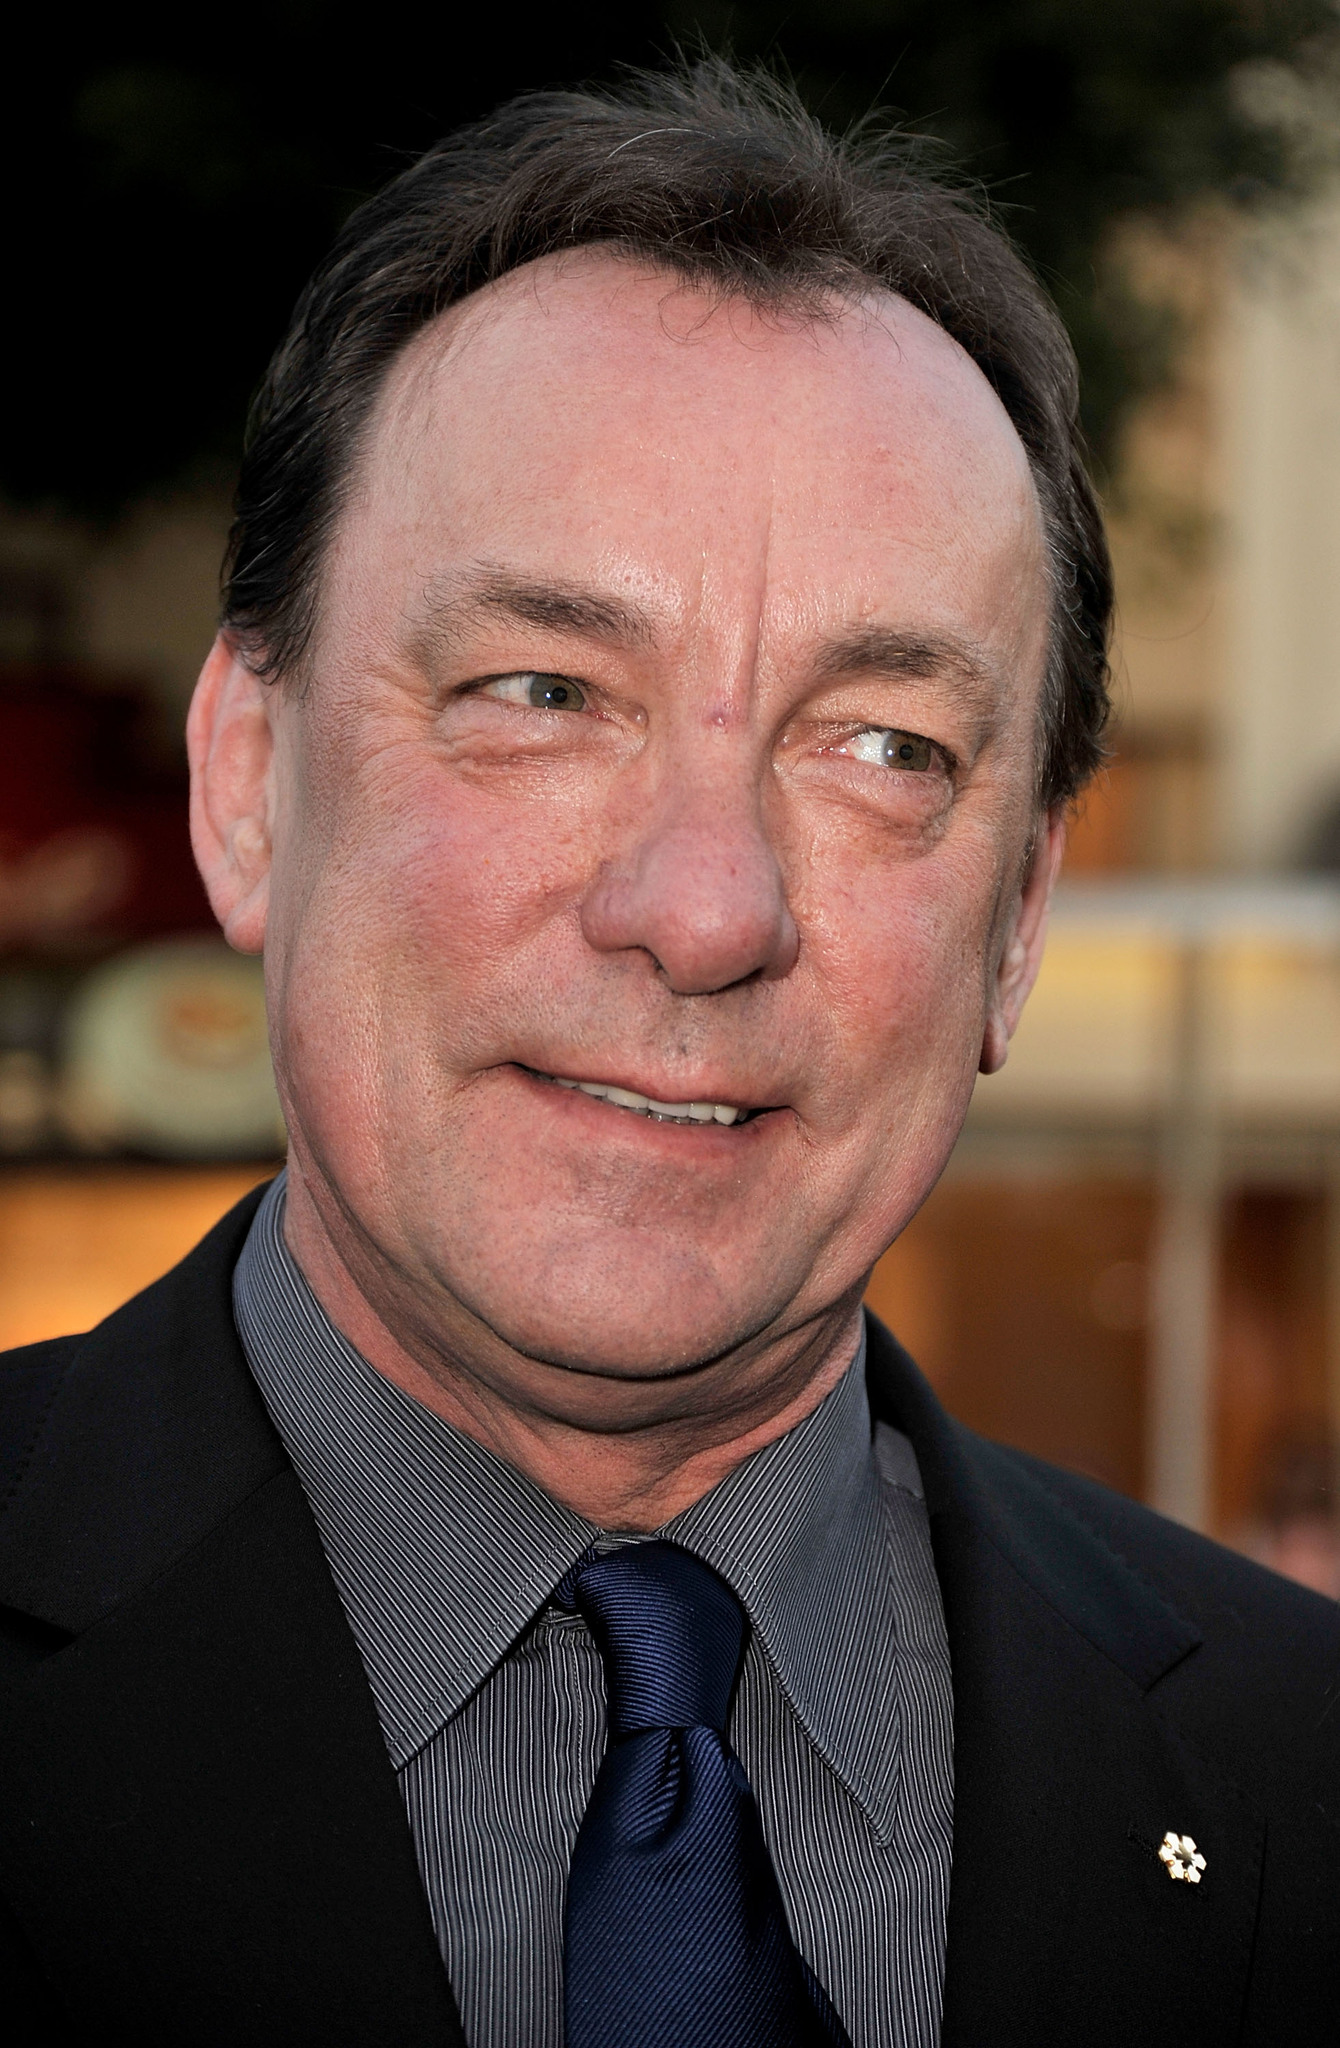 The 68-year old son of father (?) and mother(?) Neil Peart in 2021 photo. Neil Peart earned a  million dollar salary - leaving the net worth at  million in 2021